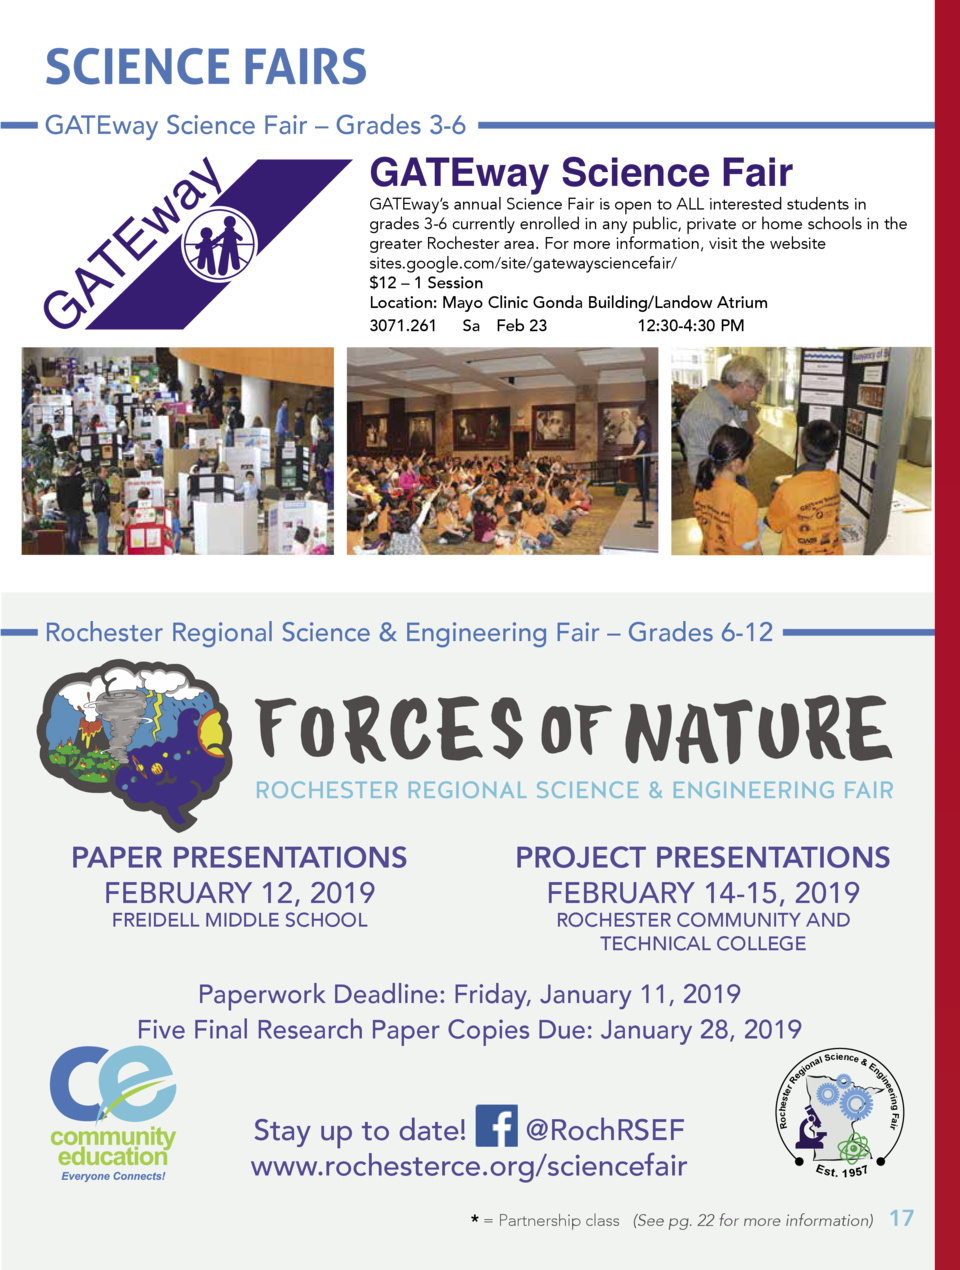 SCIENCE FAIRS GATEway Science Fair     Grades 3-6  GATEway Science Fair  GATEway   s annual Science Fair is open to ALL in...